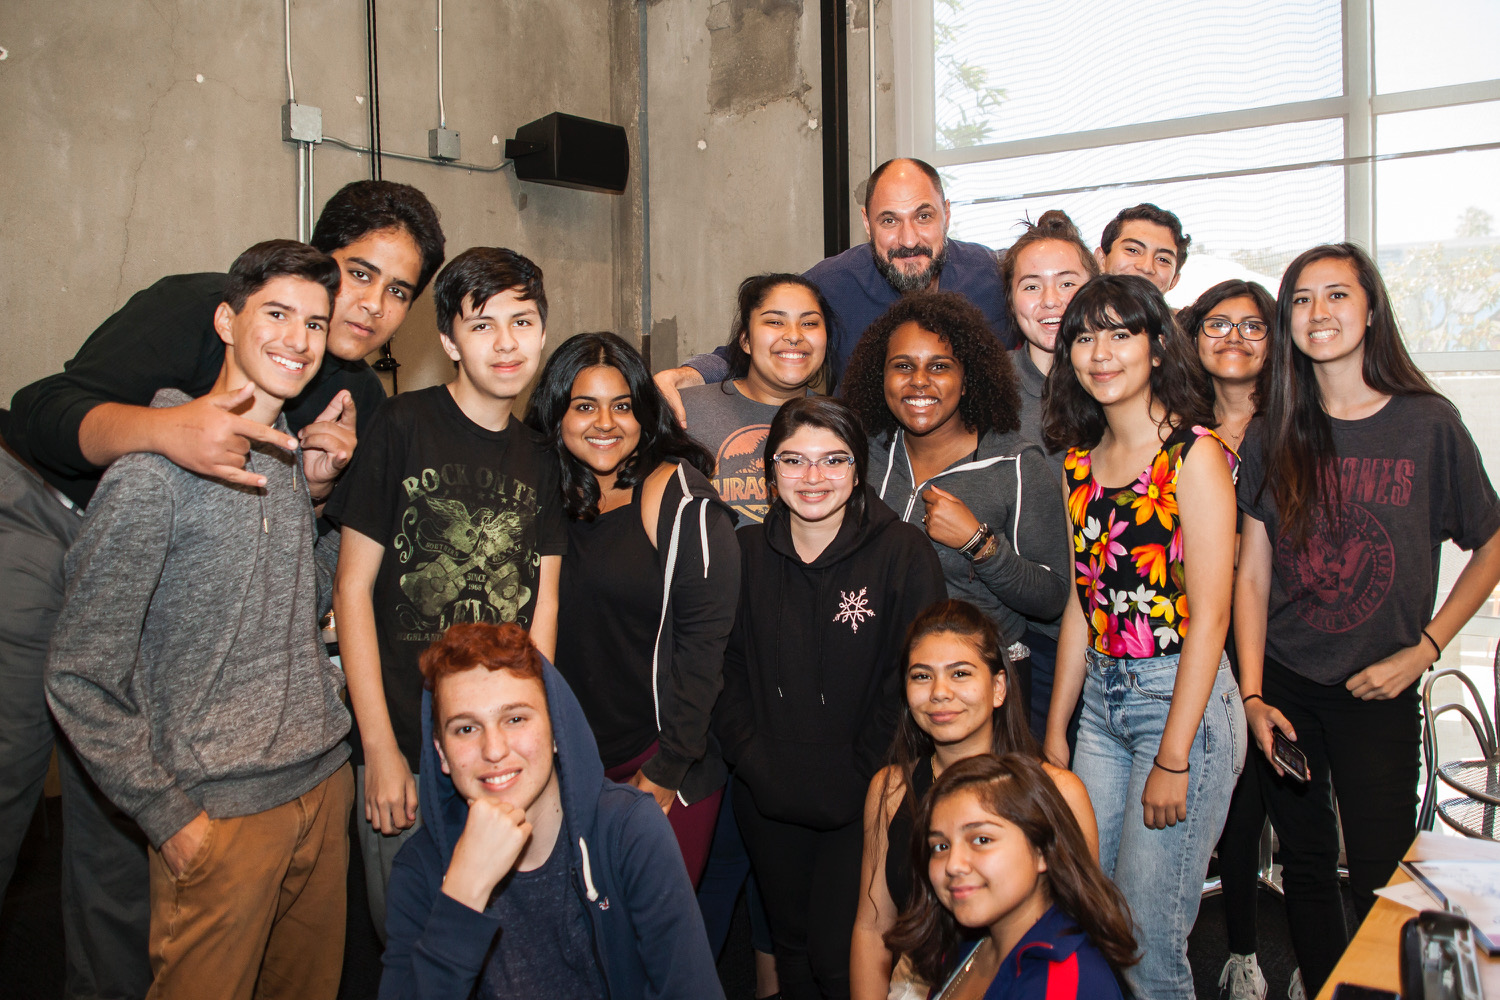 Film2Future Class of 2017 students pose with Loren Bouchard, the creator of Bob's Burgers. (Photo credit: Lauren Elisabeth Photography)